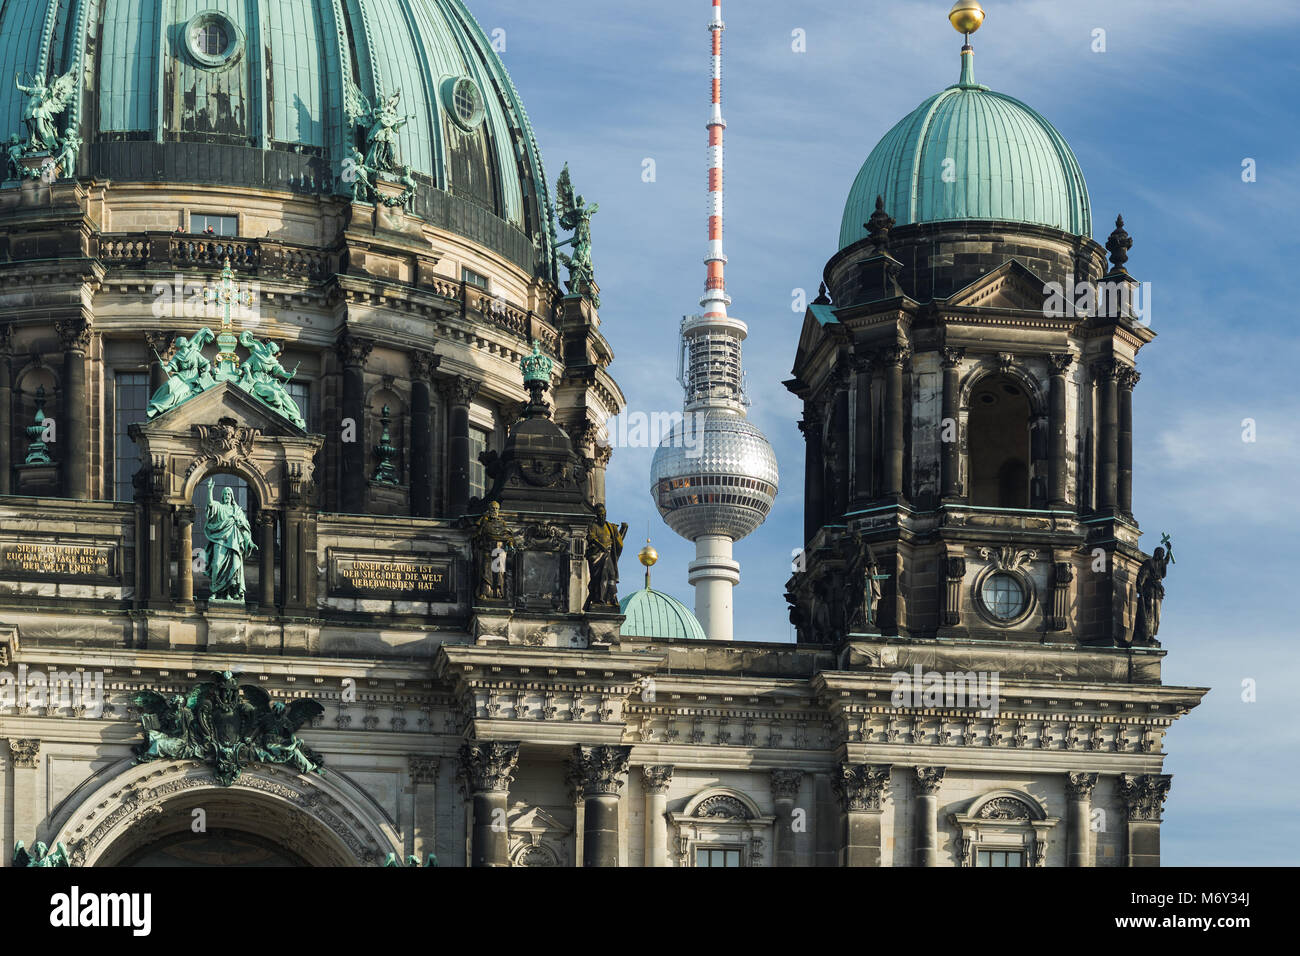 The Berliner Dom and Fernsehturm (TV Tower), Mitte, Berlin, Germany - Stock Image